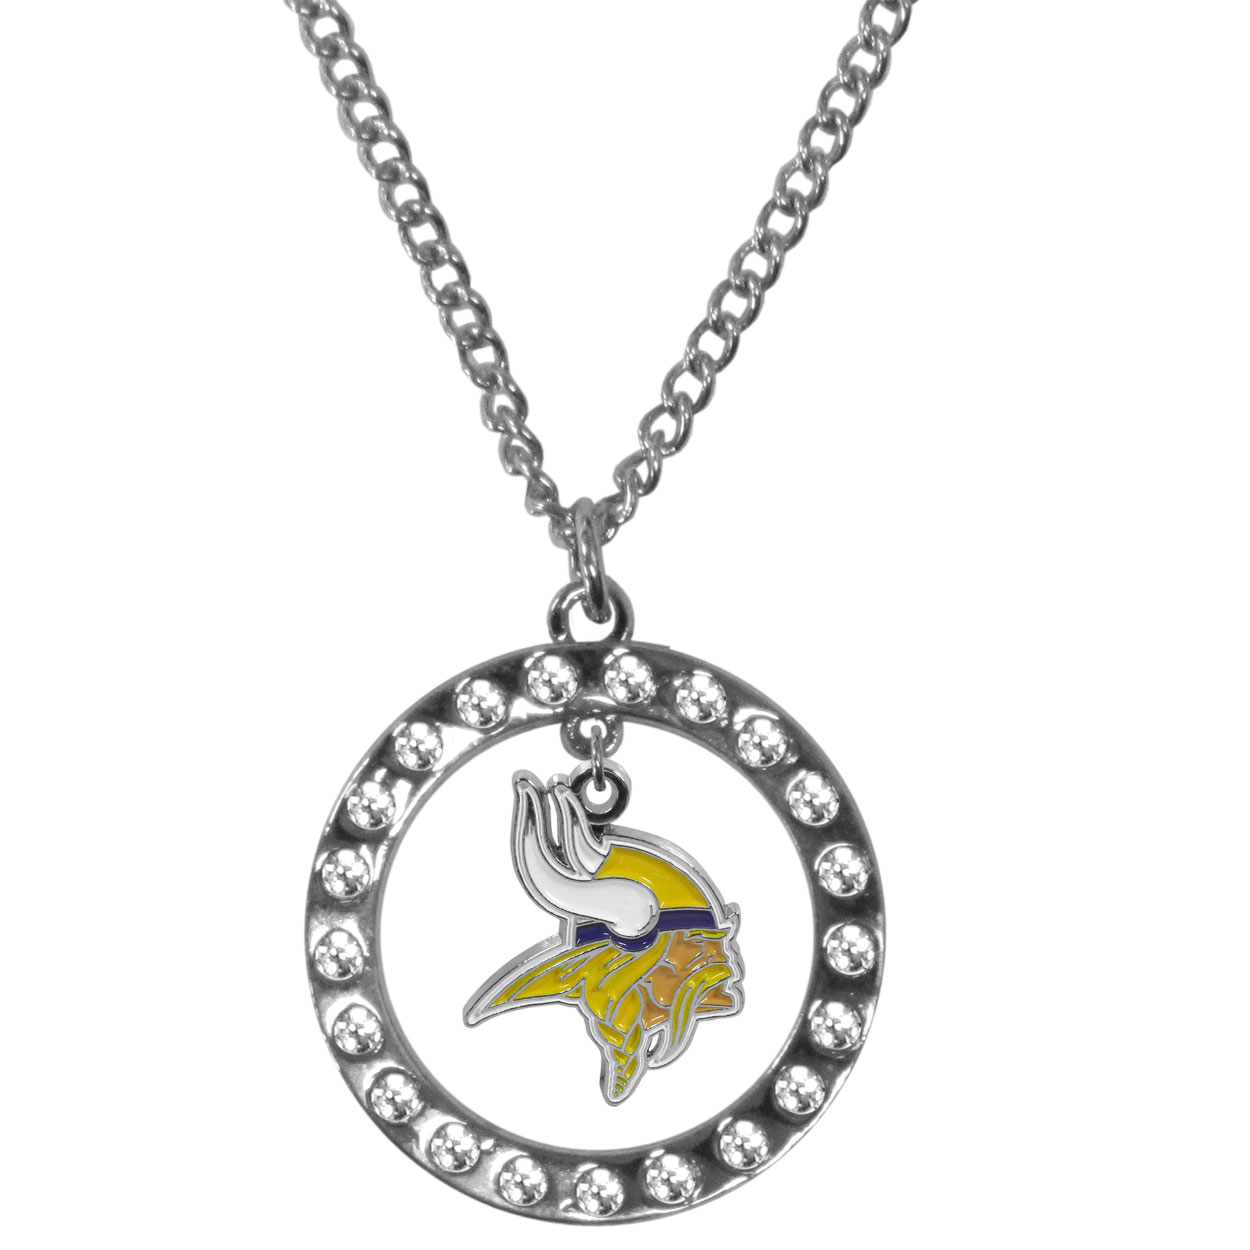 Minnesota Vikings Rhinestone Hoop Necklaces - Our Minnesota Vikings rhinestone hoop necklace comes on an 18 inch chain and features a hoop covered in rhinestones with a high polish chrome finish and a cast and enameled team charm dangling in the center.